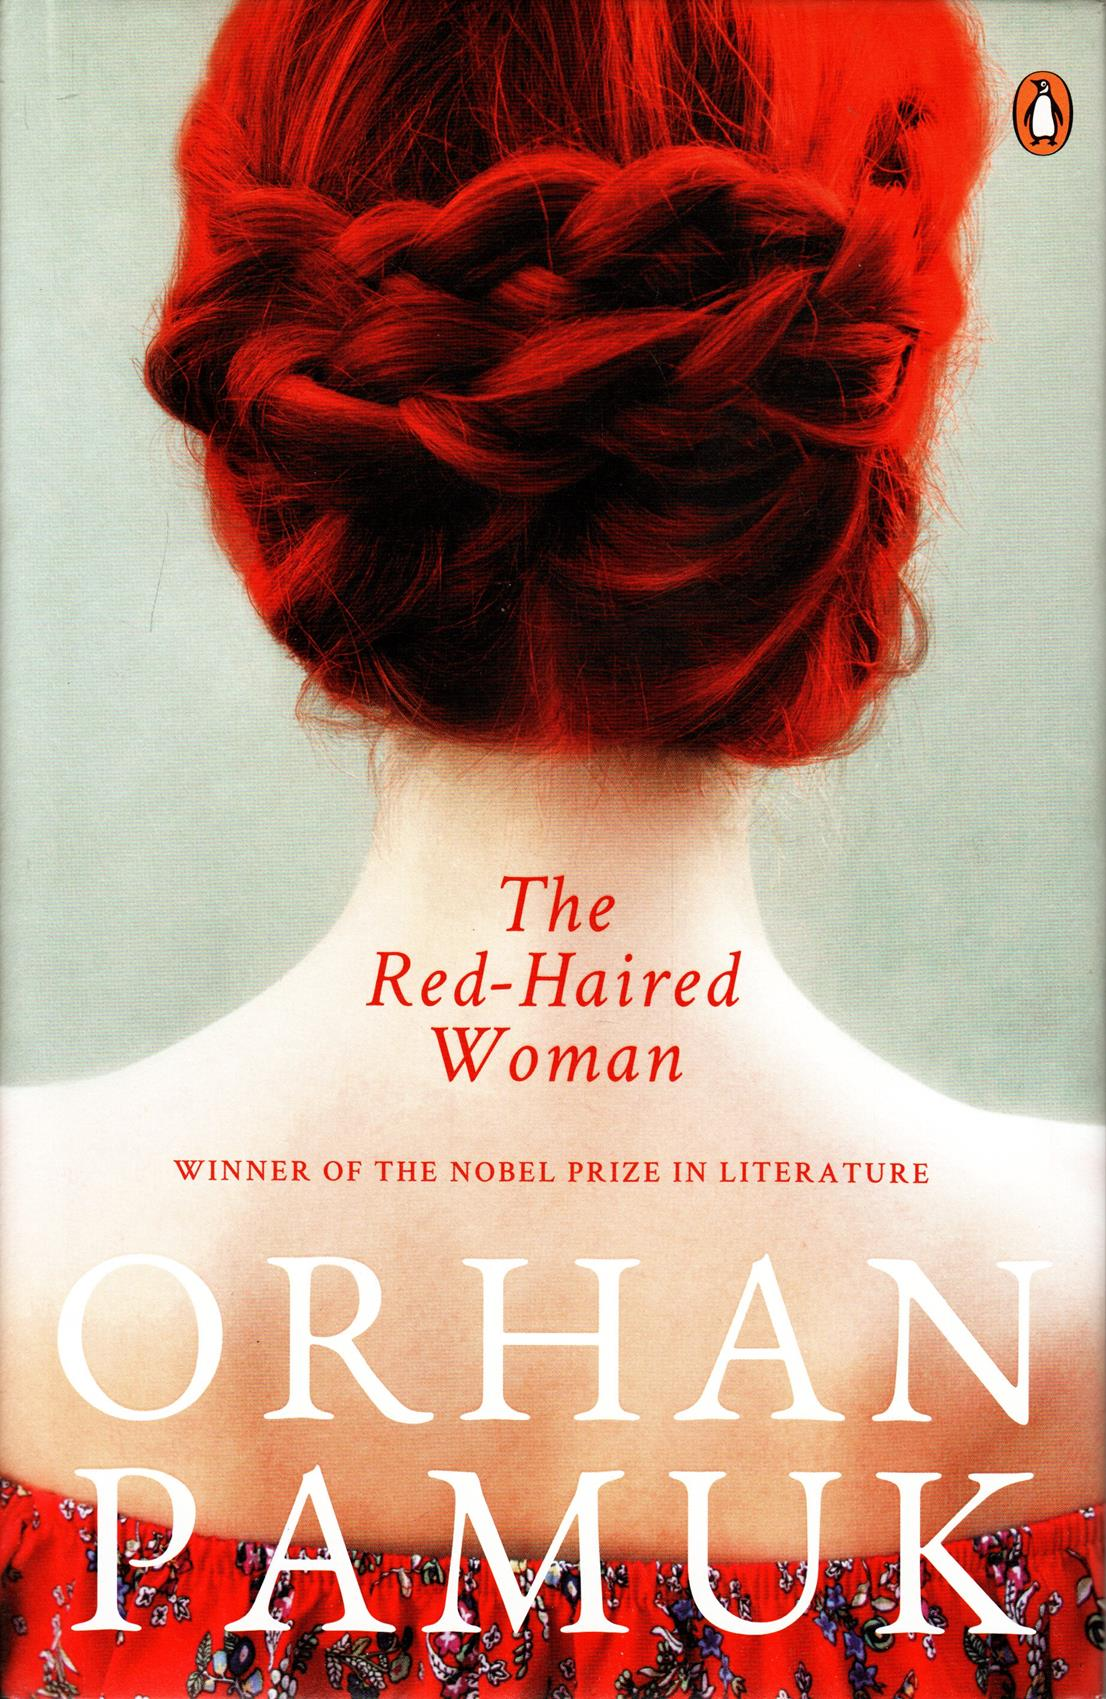 The Red-Haired Women